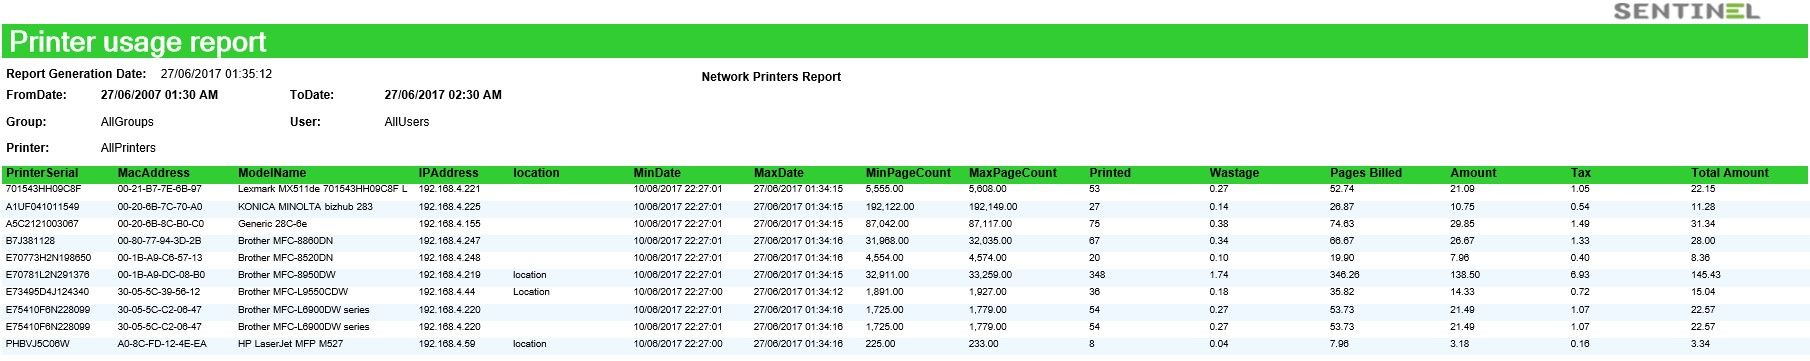 Print Usage Report collect MIBs data SNMP